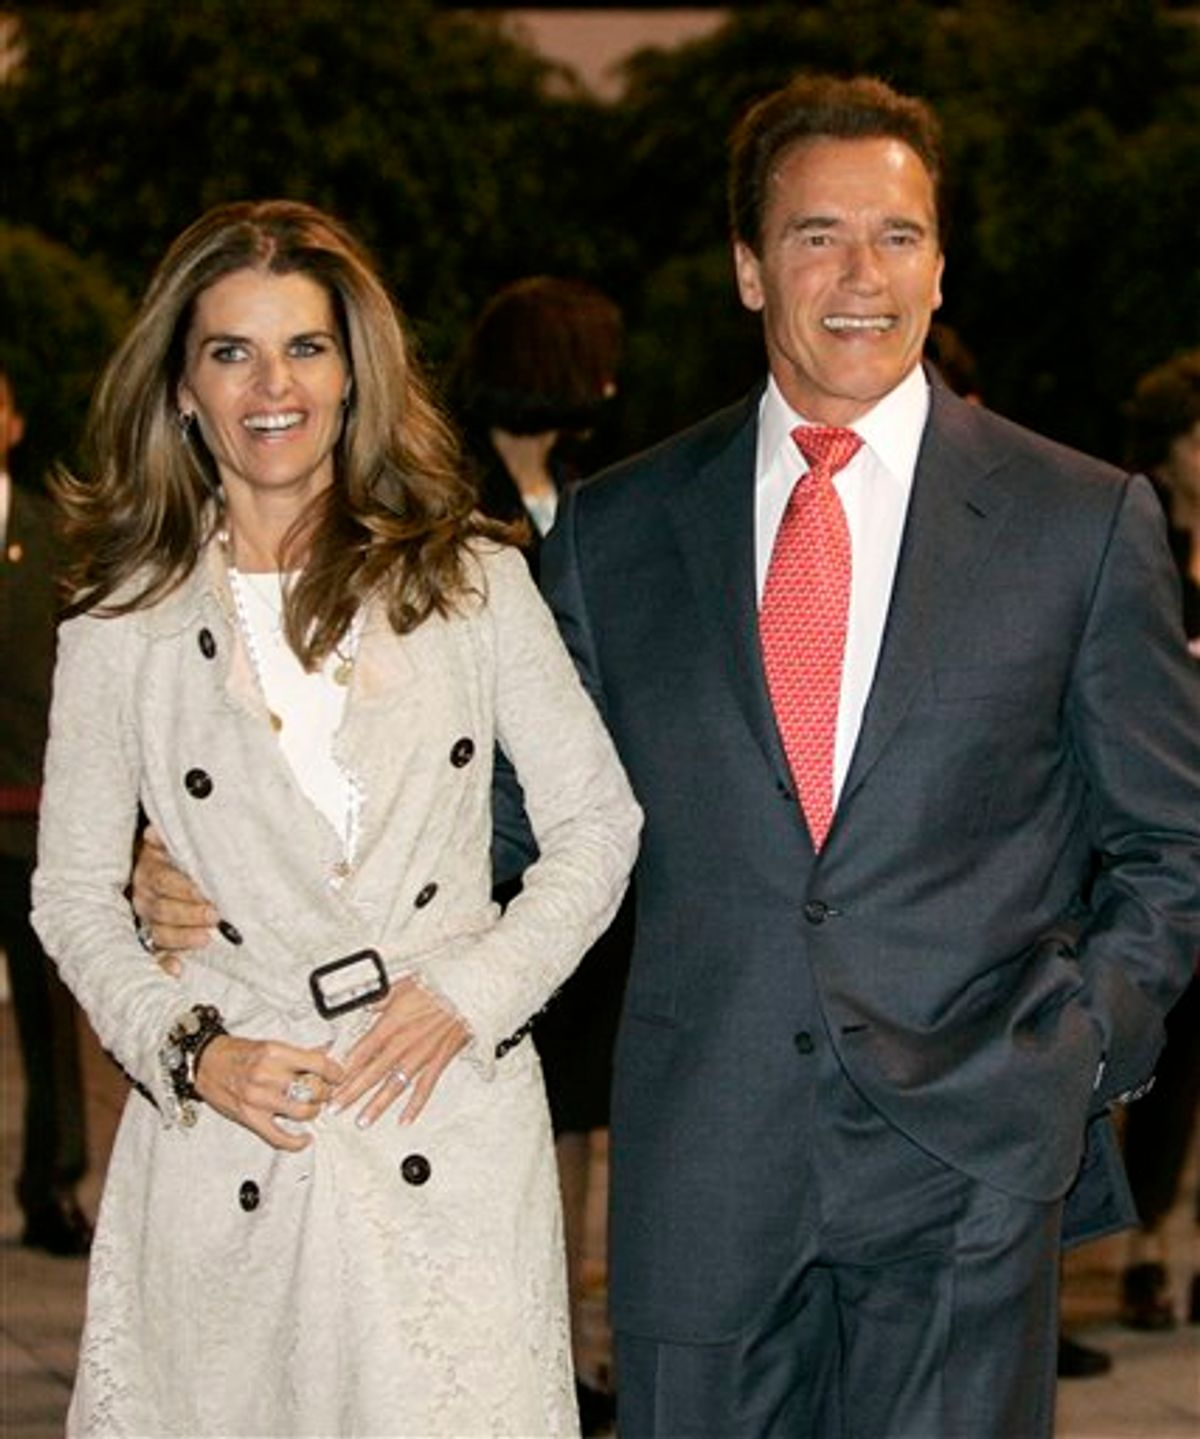 FILE - In this Nov. 8, 2006 file photo, California Gov. Arnold Schwarzenegger arrives in Mexico City, Mexico, with his wife Maria Shriver. Maria Shriver has filed for divorce from Arnold Schwarzenegger in Los Angeles Superior Court, Friday, July 1, 2011.   (AP Photo/Marcio Jose Sanchez, file) (AP)